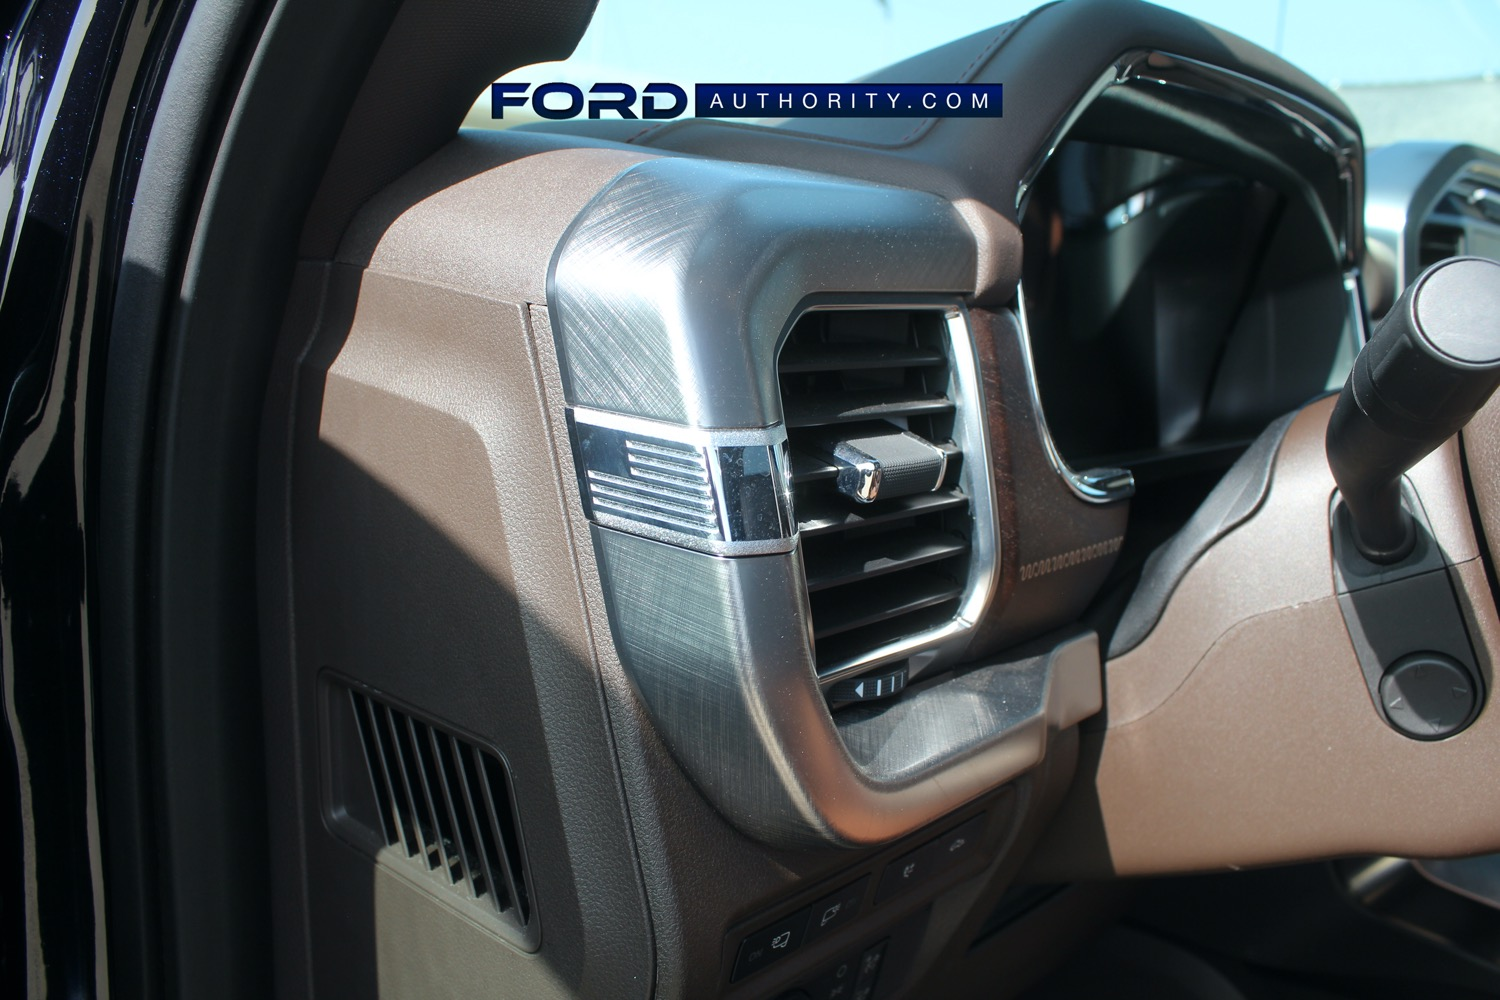 2021-Ford-F-150-King-Ranch-Interior-Front-Row-017-driver-side-AC-vent-US-American-flag-decor.jpg